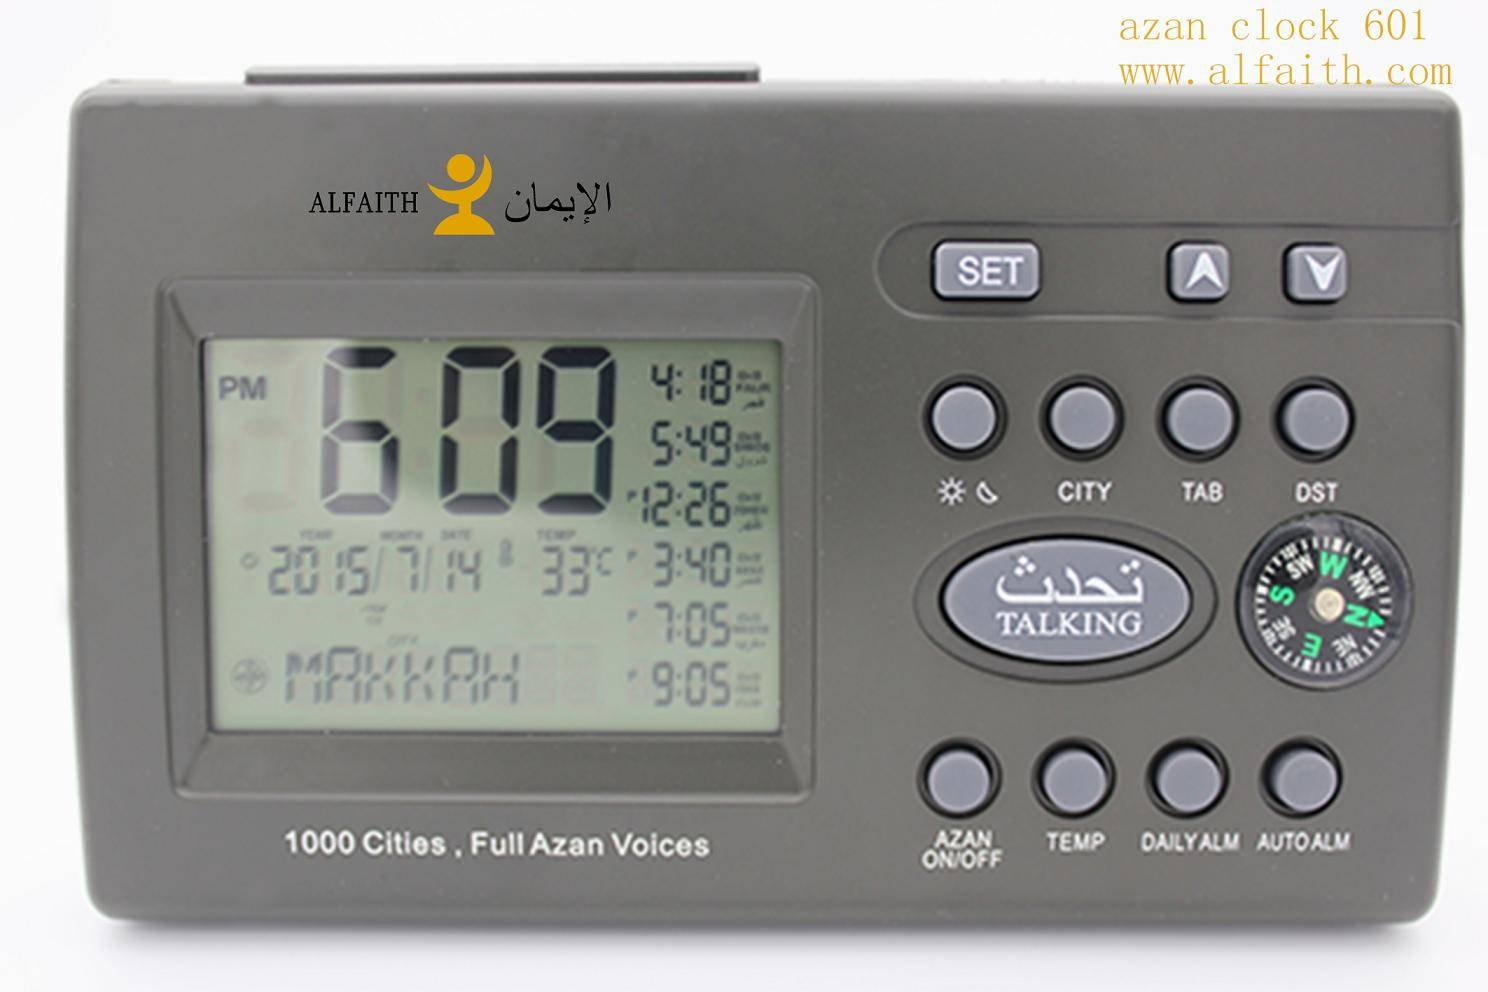 azan clock Alfaith clock Islamic desk clocks Muslim clock